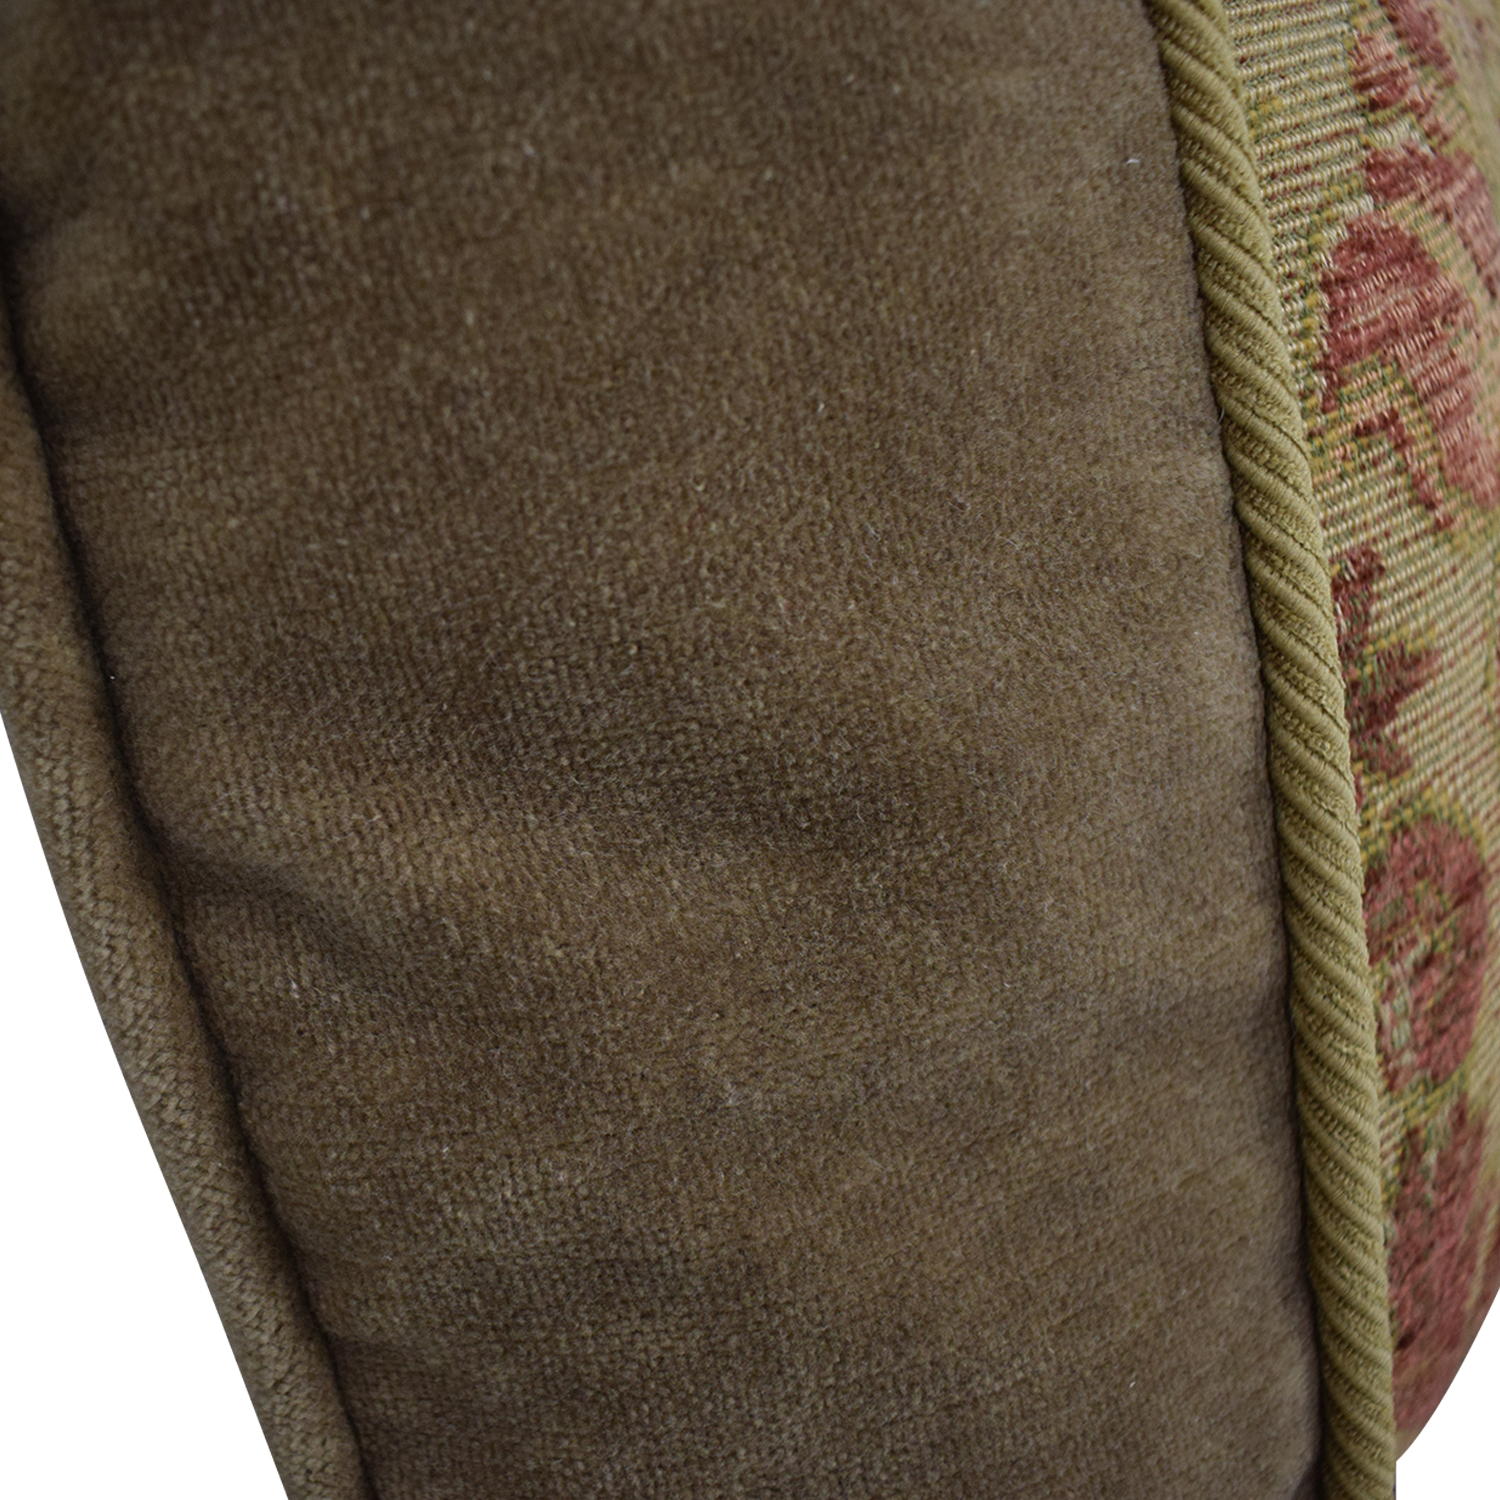 buy  Custom Made Beige Multi-Colored Decorative Pillow online